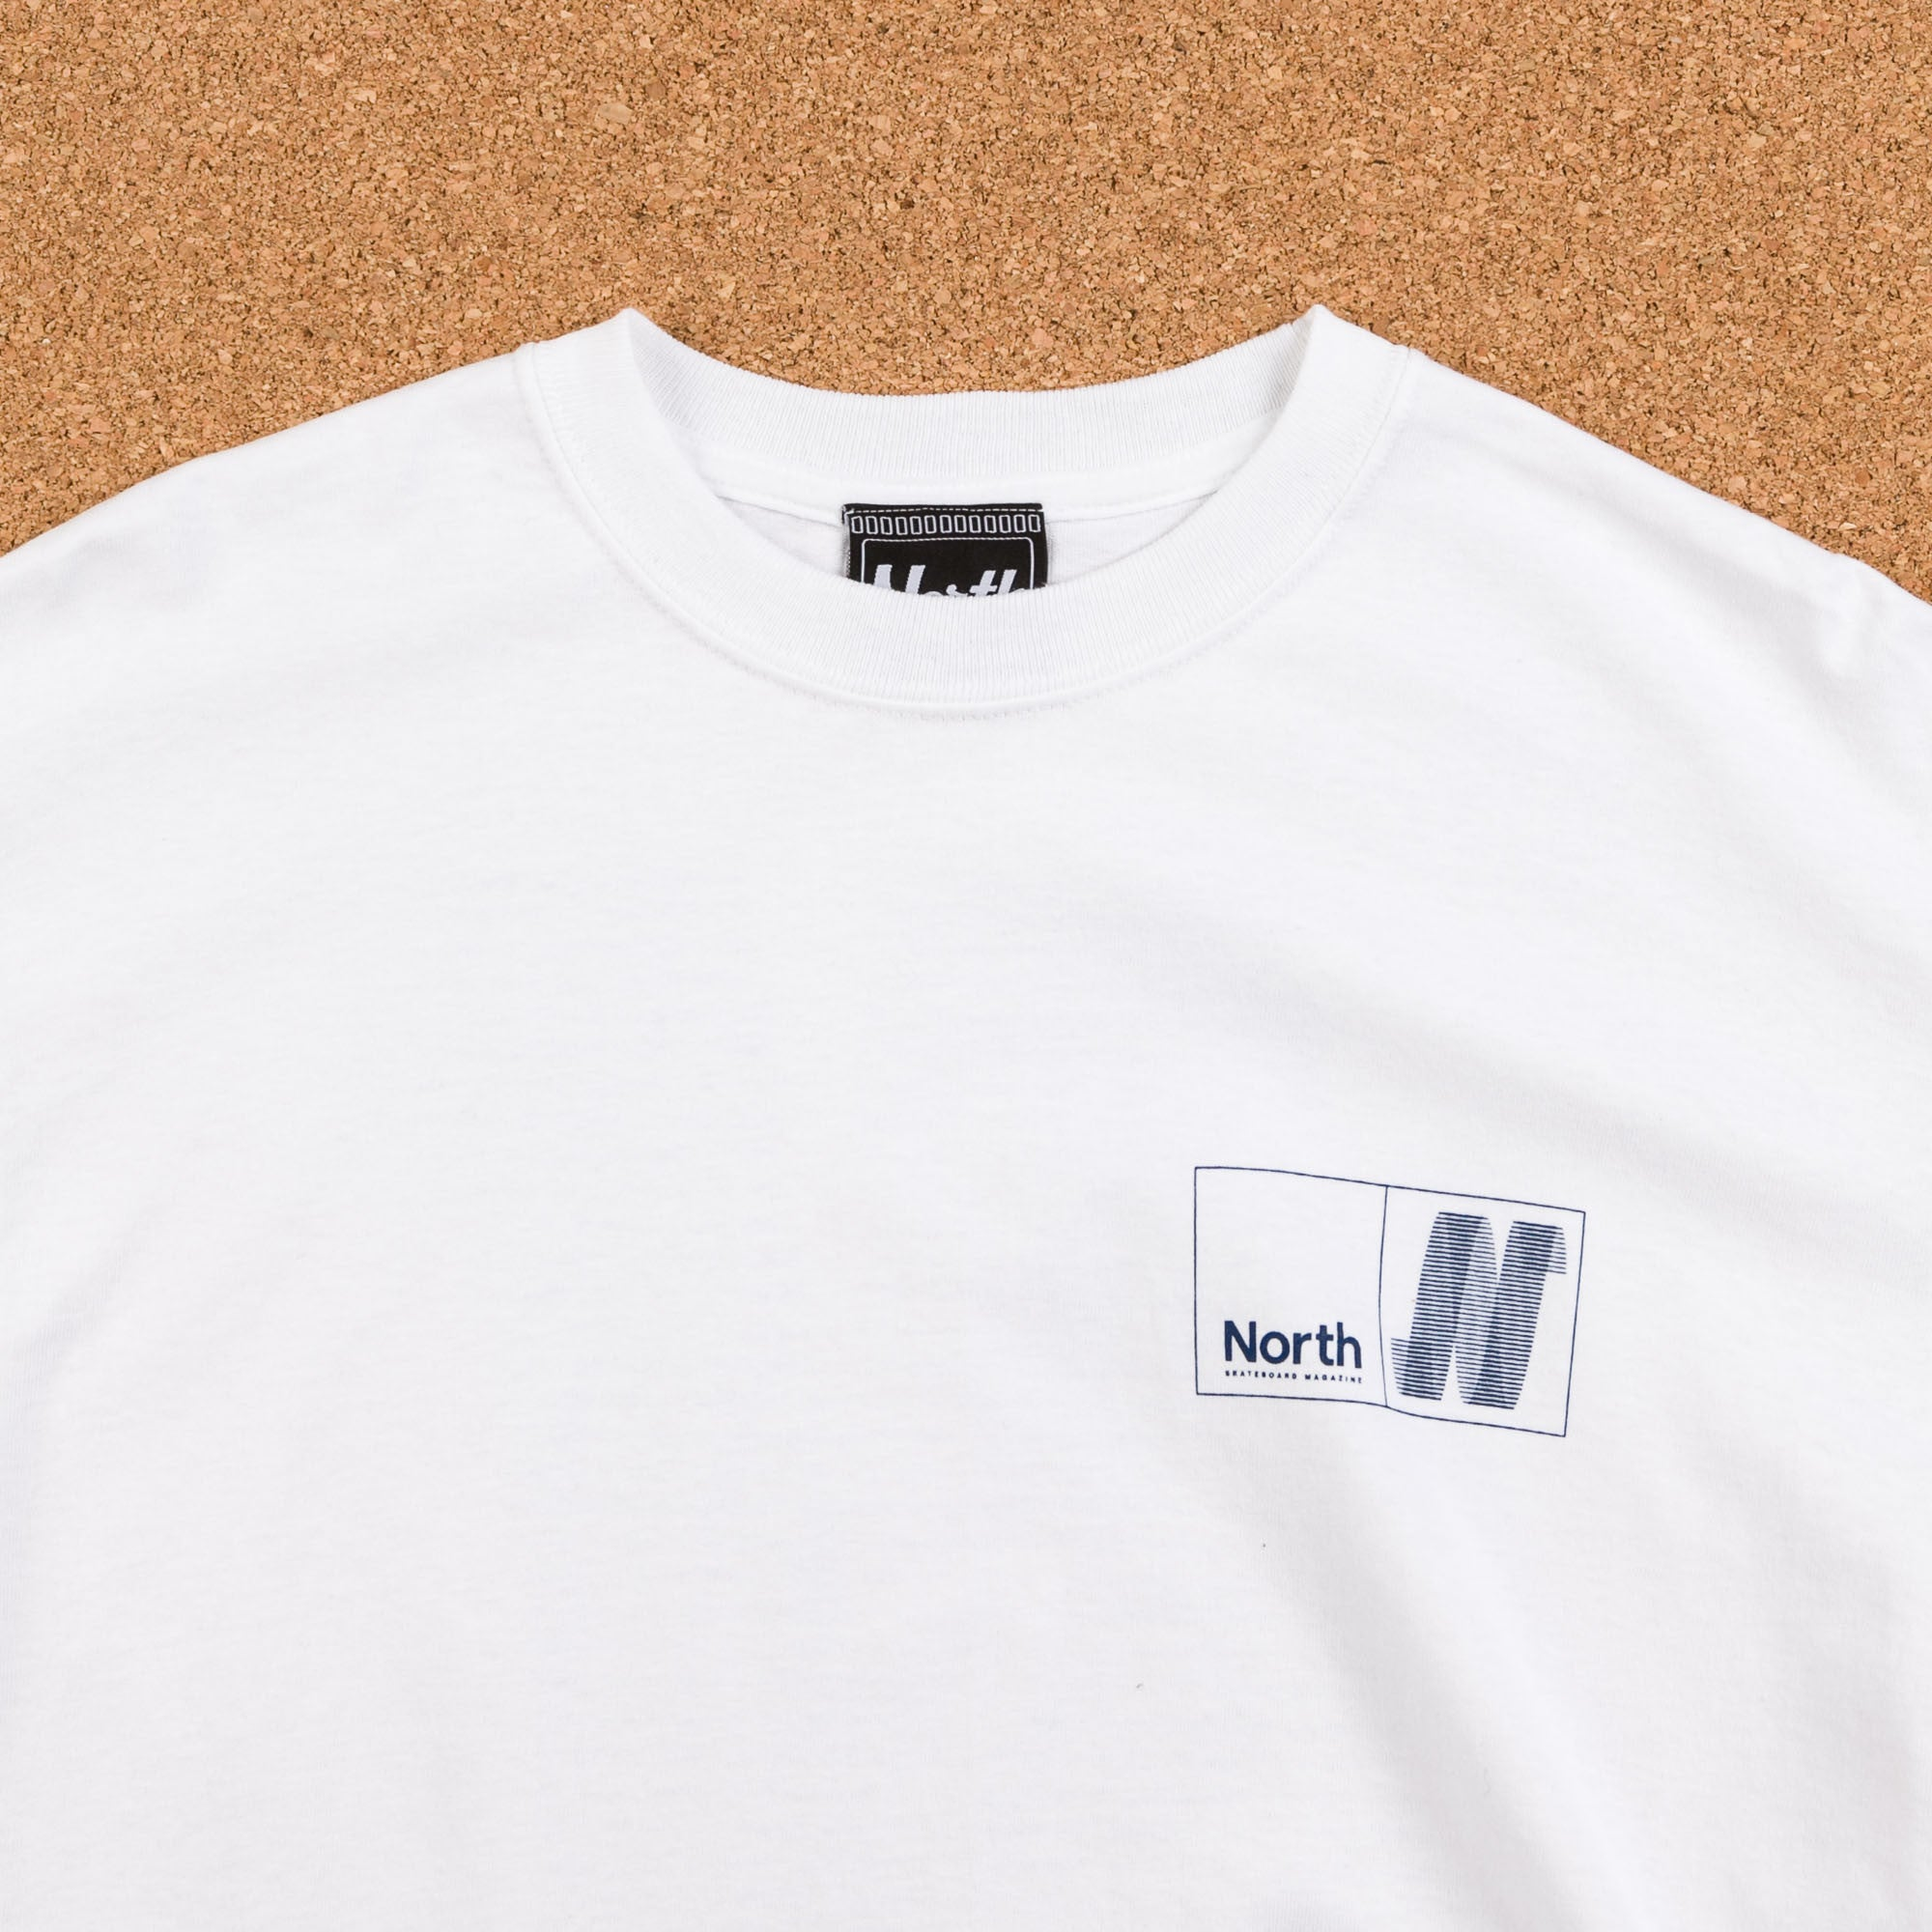 North Skateboard Magazine N Logo Long Sleeve T-Shirt - White / Navy